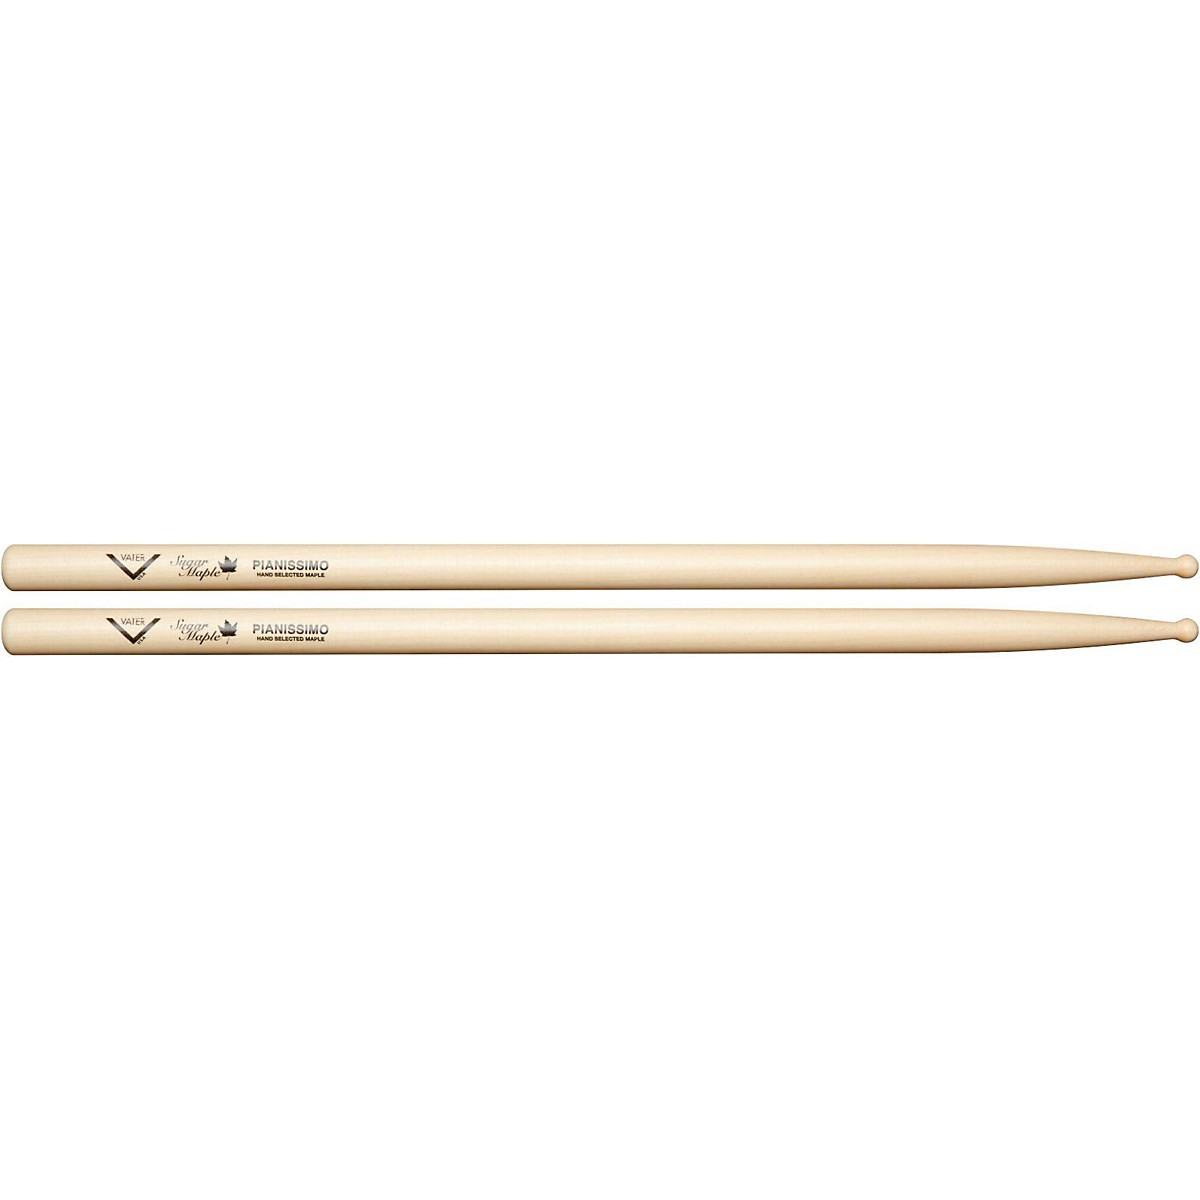 Vater Pianissimo Sugar Maple Drum Stick